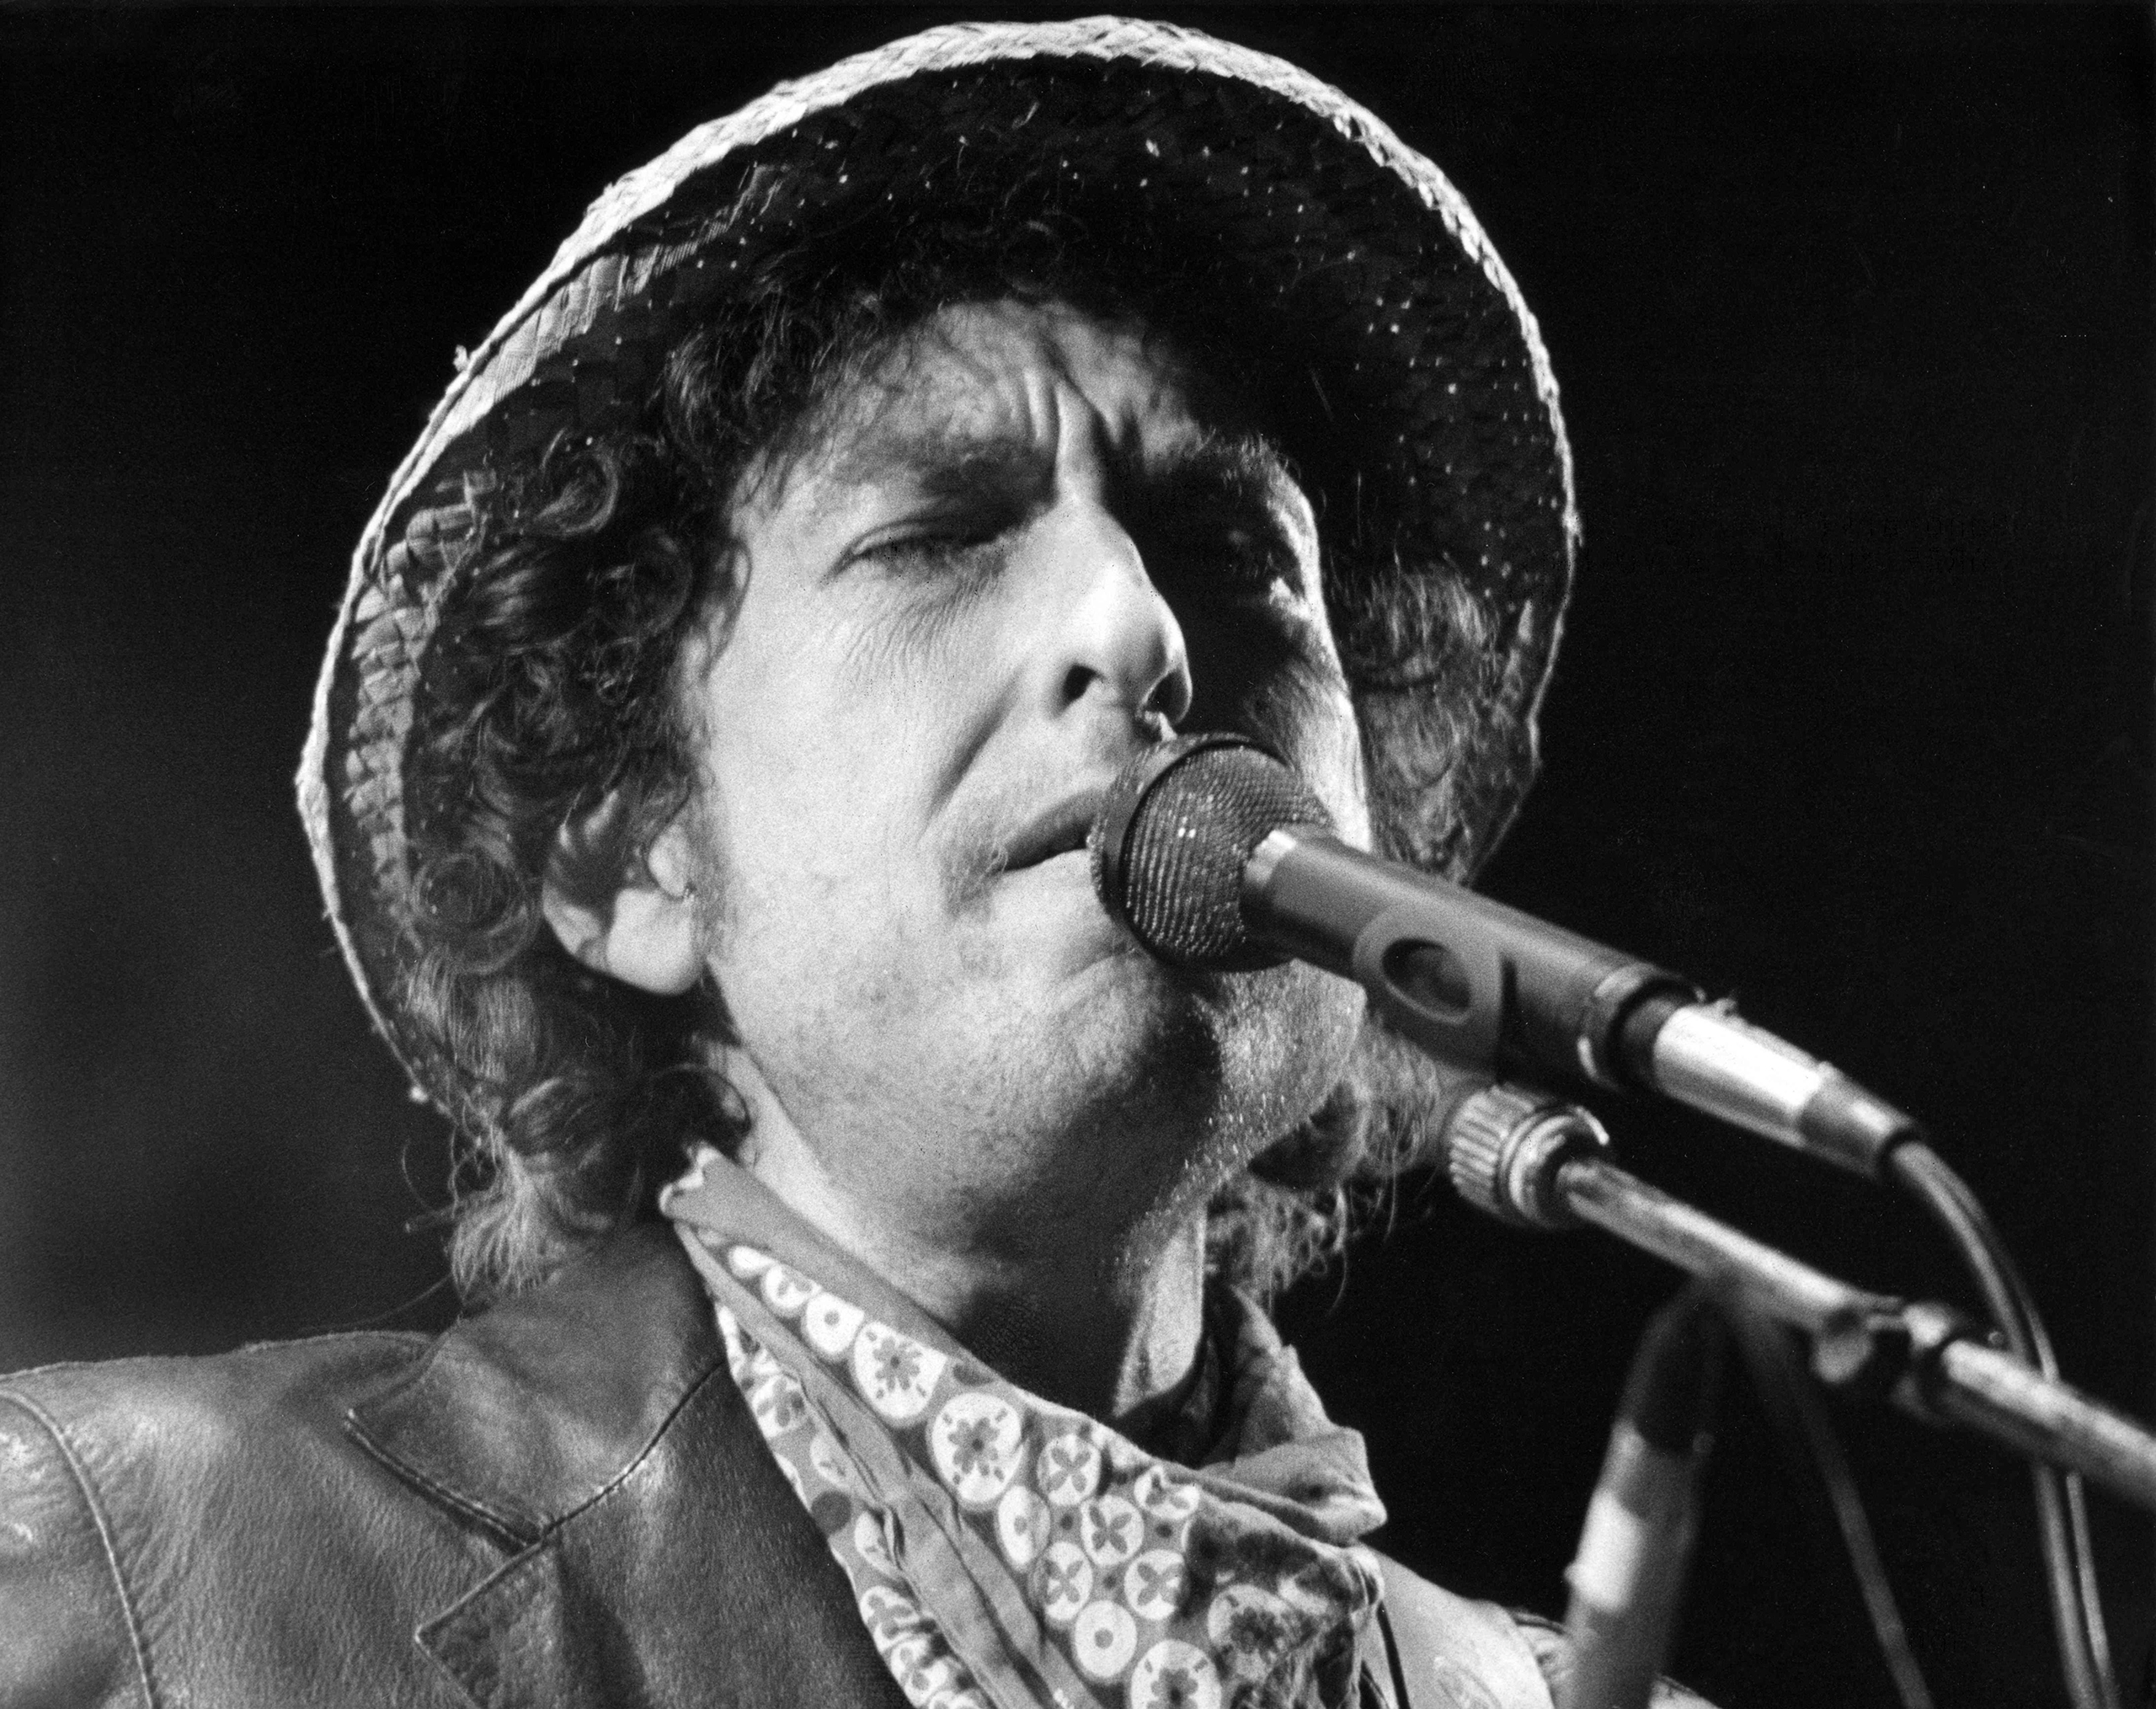 Bob Dylan performs during a concert at the Olympic stadium in Munich, southern Germany, on June 3, 1984. Dylan won the Nobel Prize in Literature on Oct. 13, 2016.